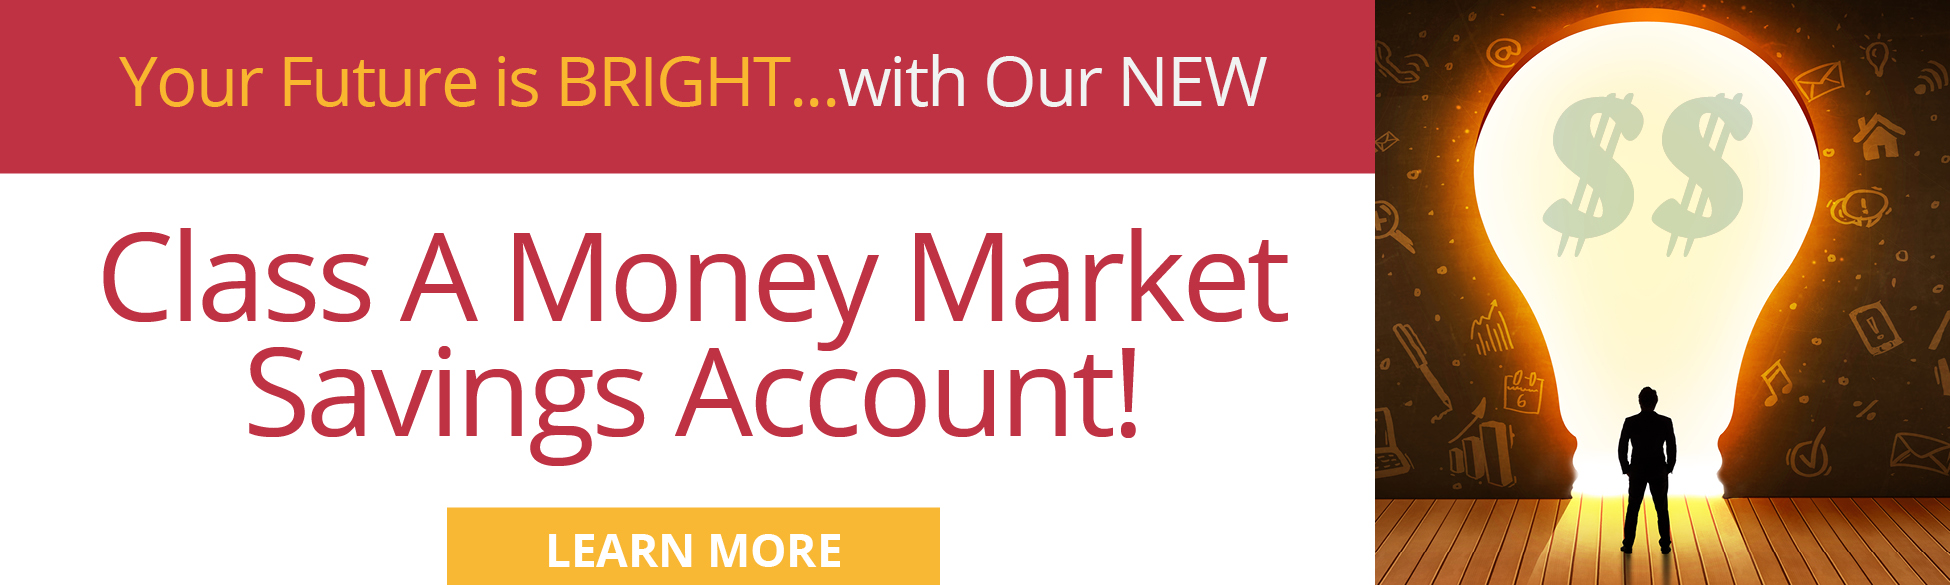 Your Future is Bright... with Our New Class A Money Market Savings Account! Learn More